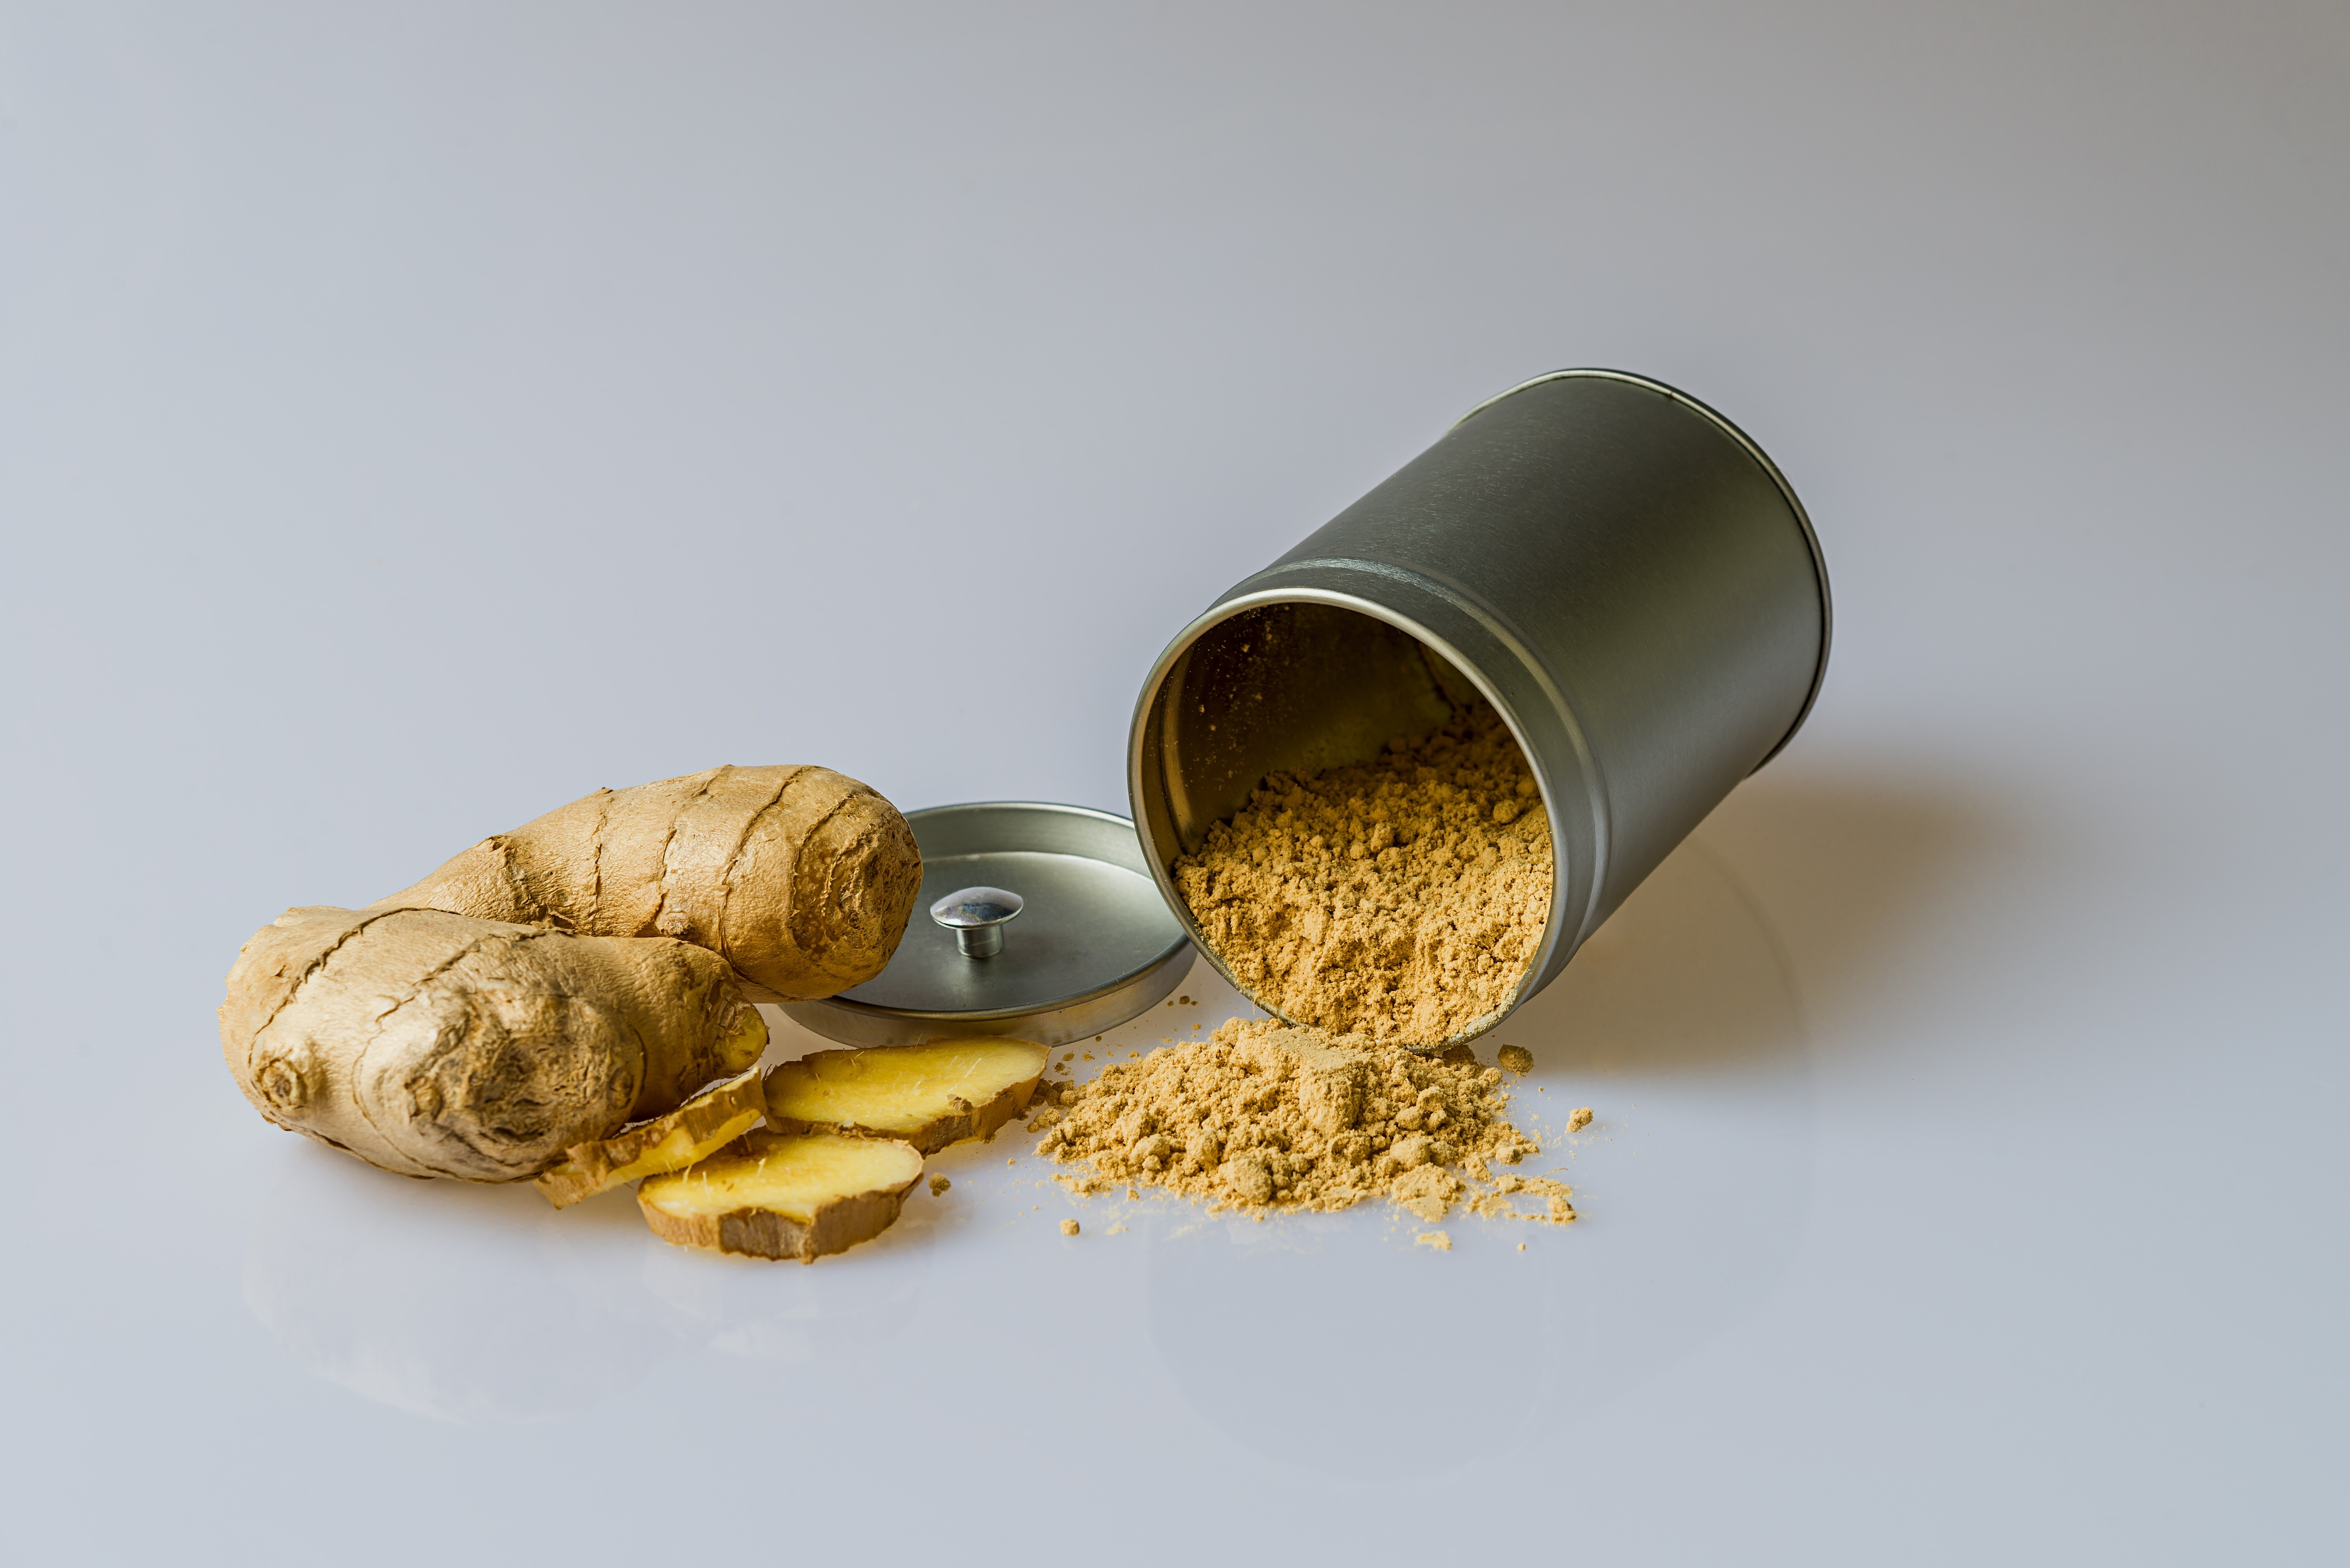 canister-food-ginger-161556